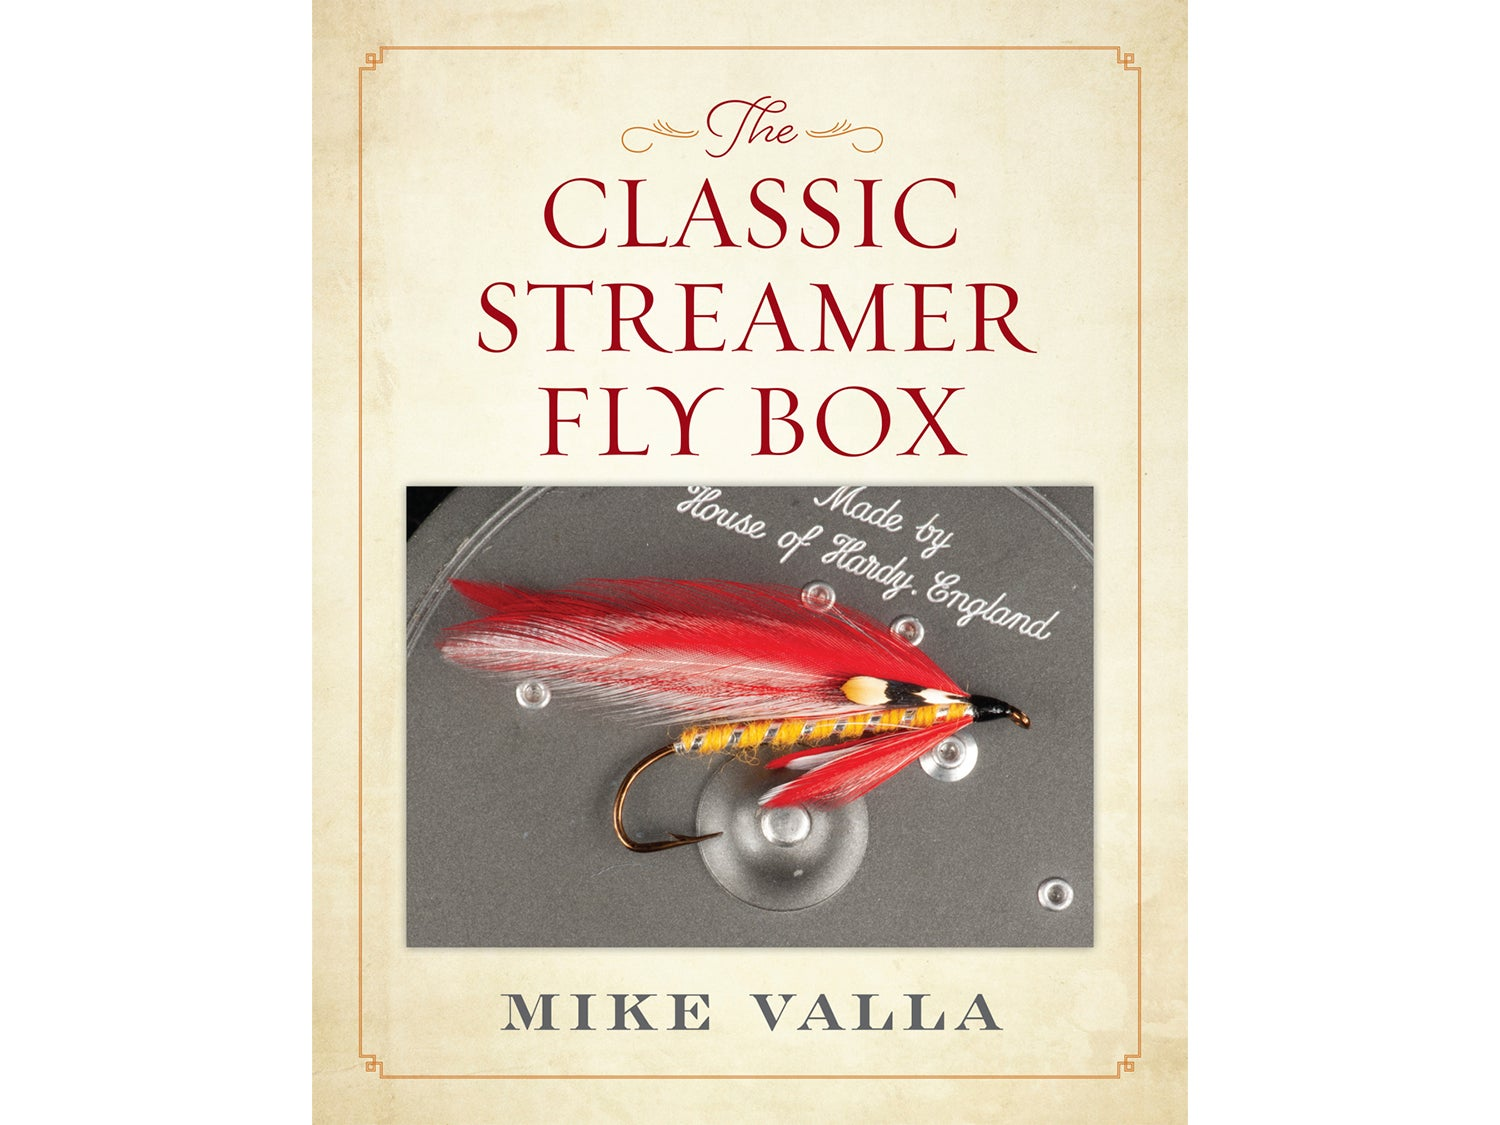 Mike Valla's The Classic Streamer Fly Box.